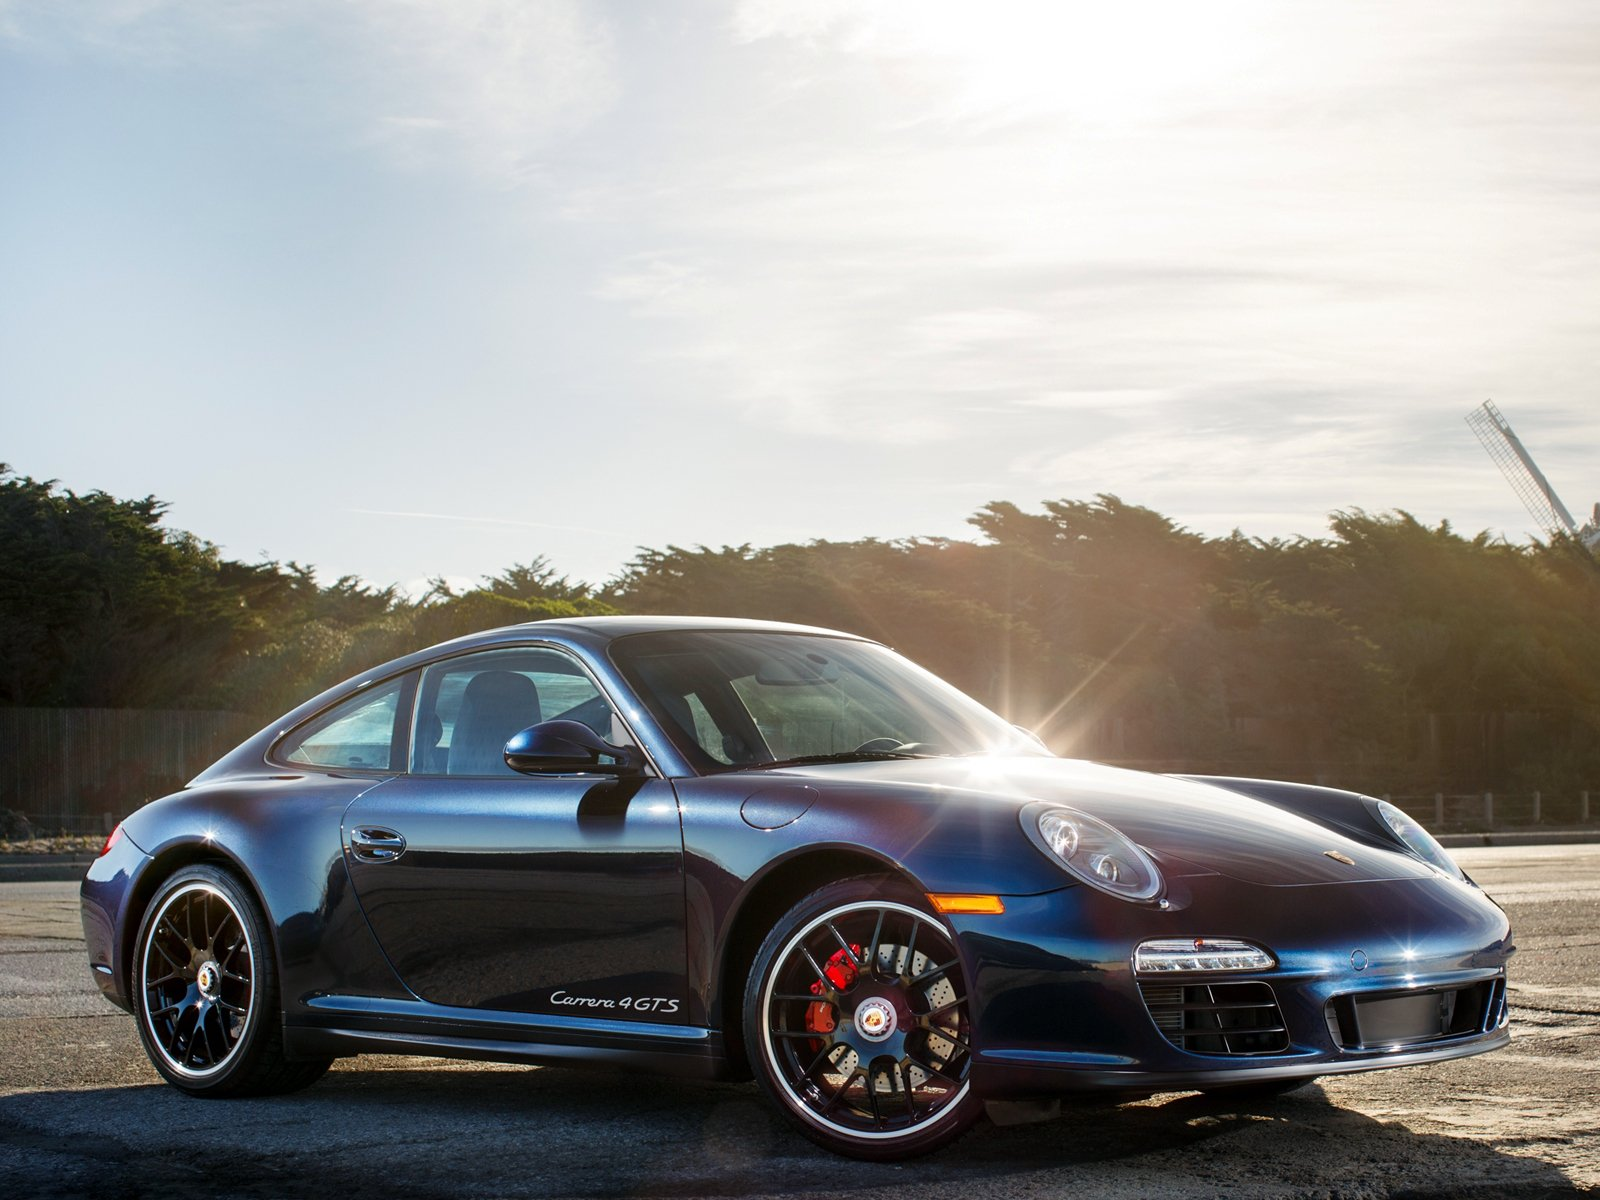 2011 porsche 911 carrera 4 gts coupe us spec 997 supercar f wallpaper 1600x1200 269839. Black Bedroom Furniture Sets. Home Design Ideas